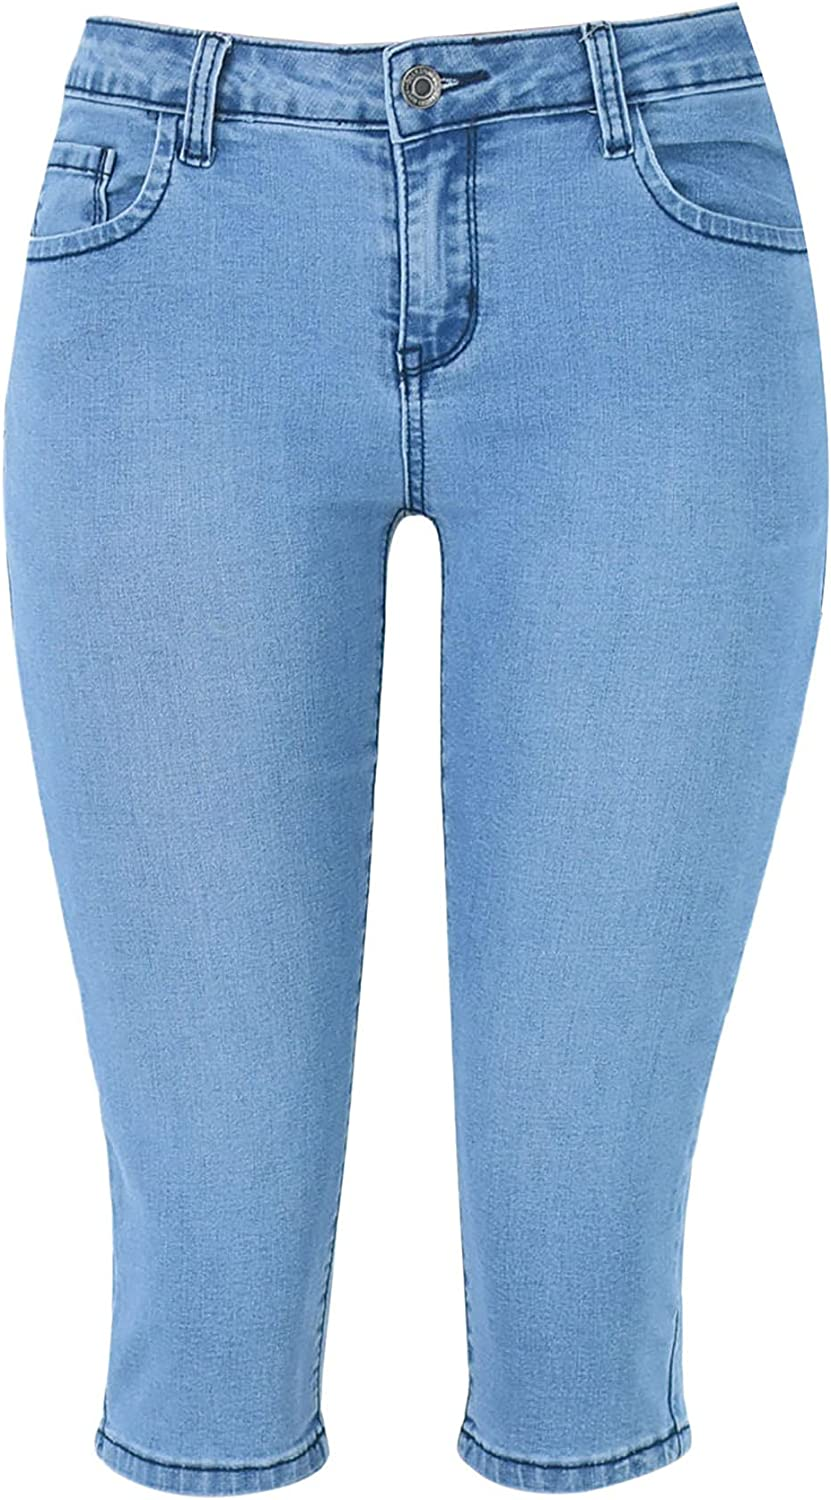 Inexpensive GUOGUOWU Women's Jean Capris Stretchy Jeans 70% OFF Outlet Capri Denim for Wome